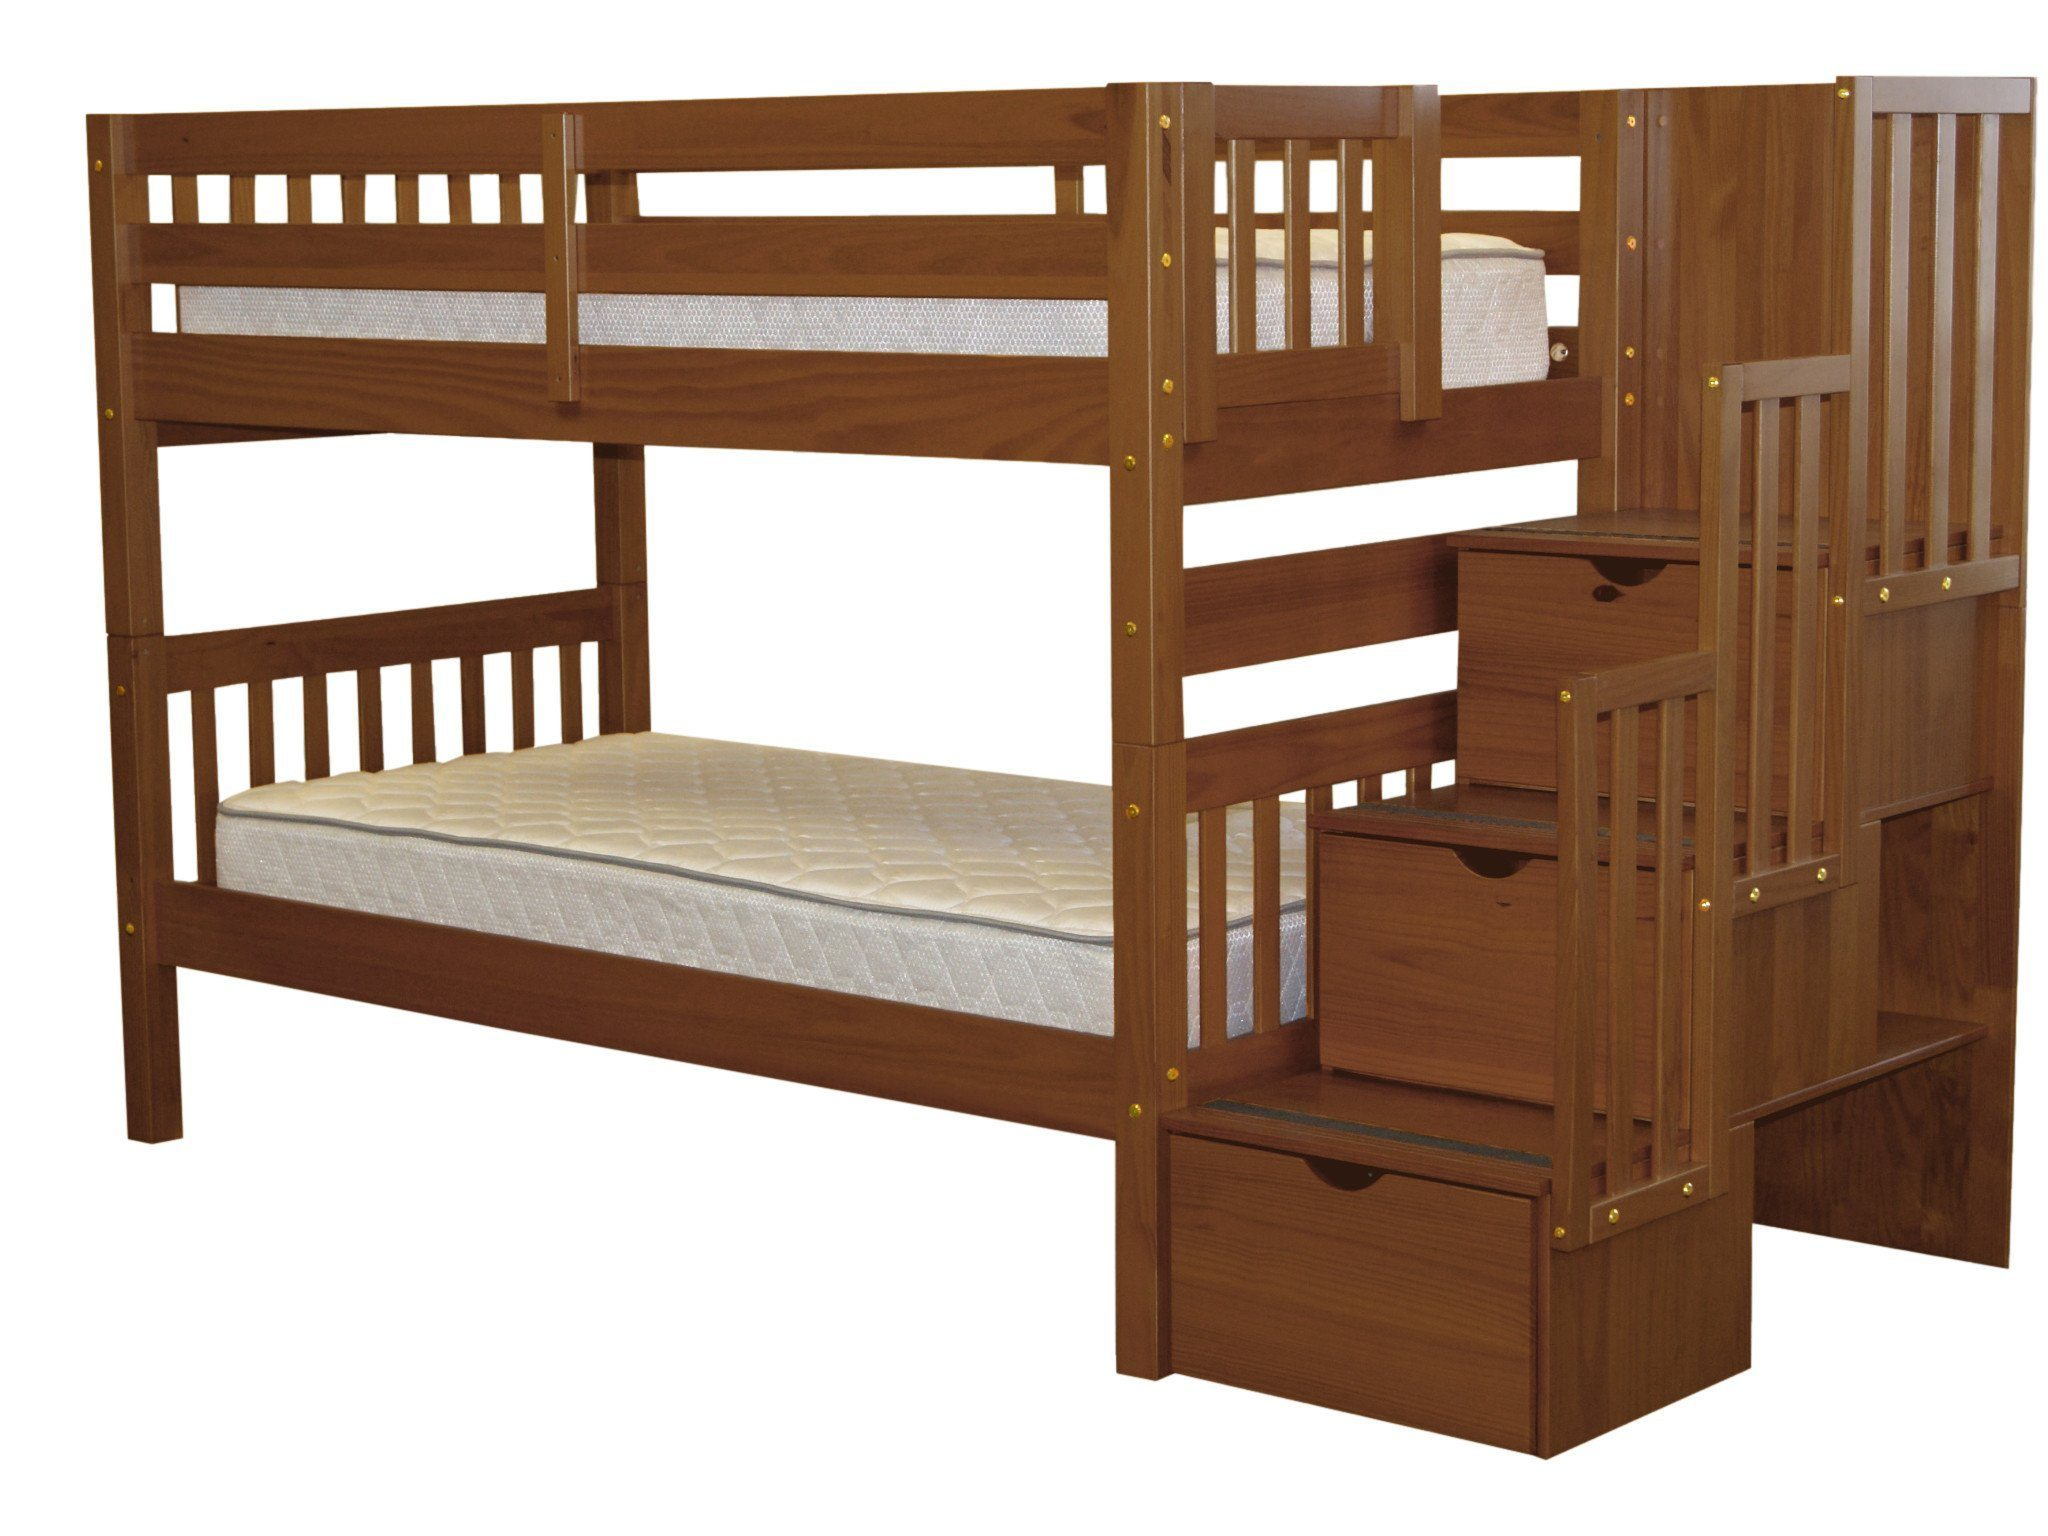 3 Twin Beds In The Space Of 1 Bedz King Stairway Bunk Beds Twin Over Twin With 3 Drawers